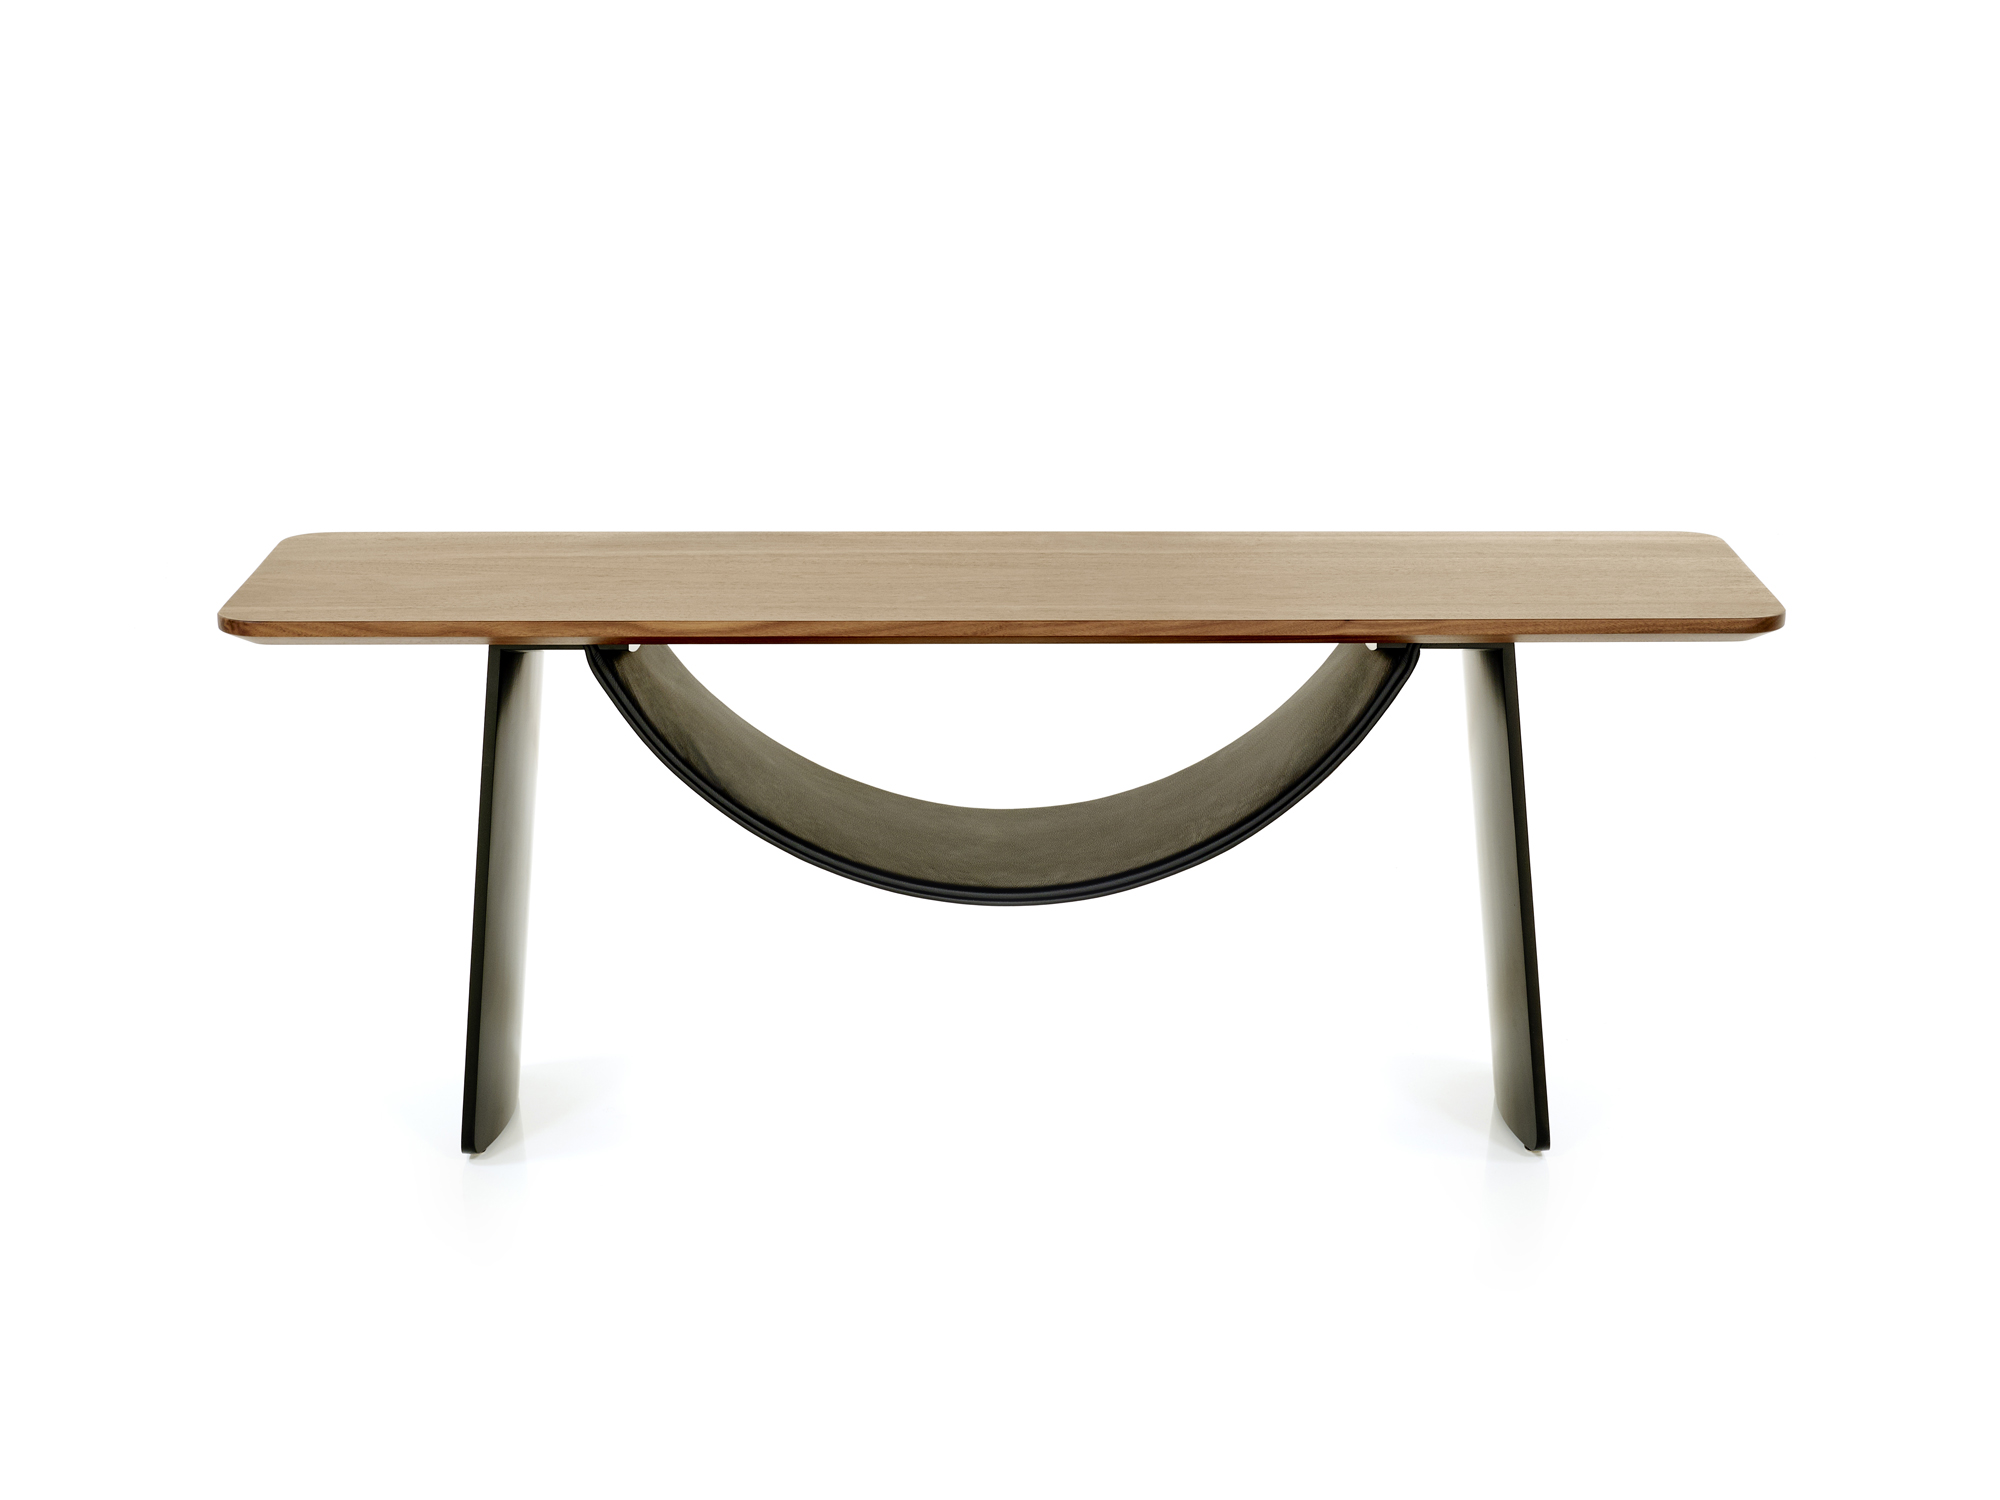 Melange Bridge Table For Wittmann - New project launched at IMM Cologne 2018